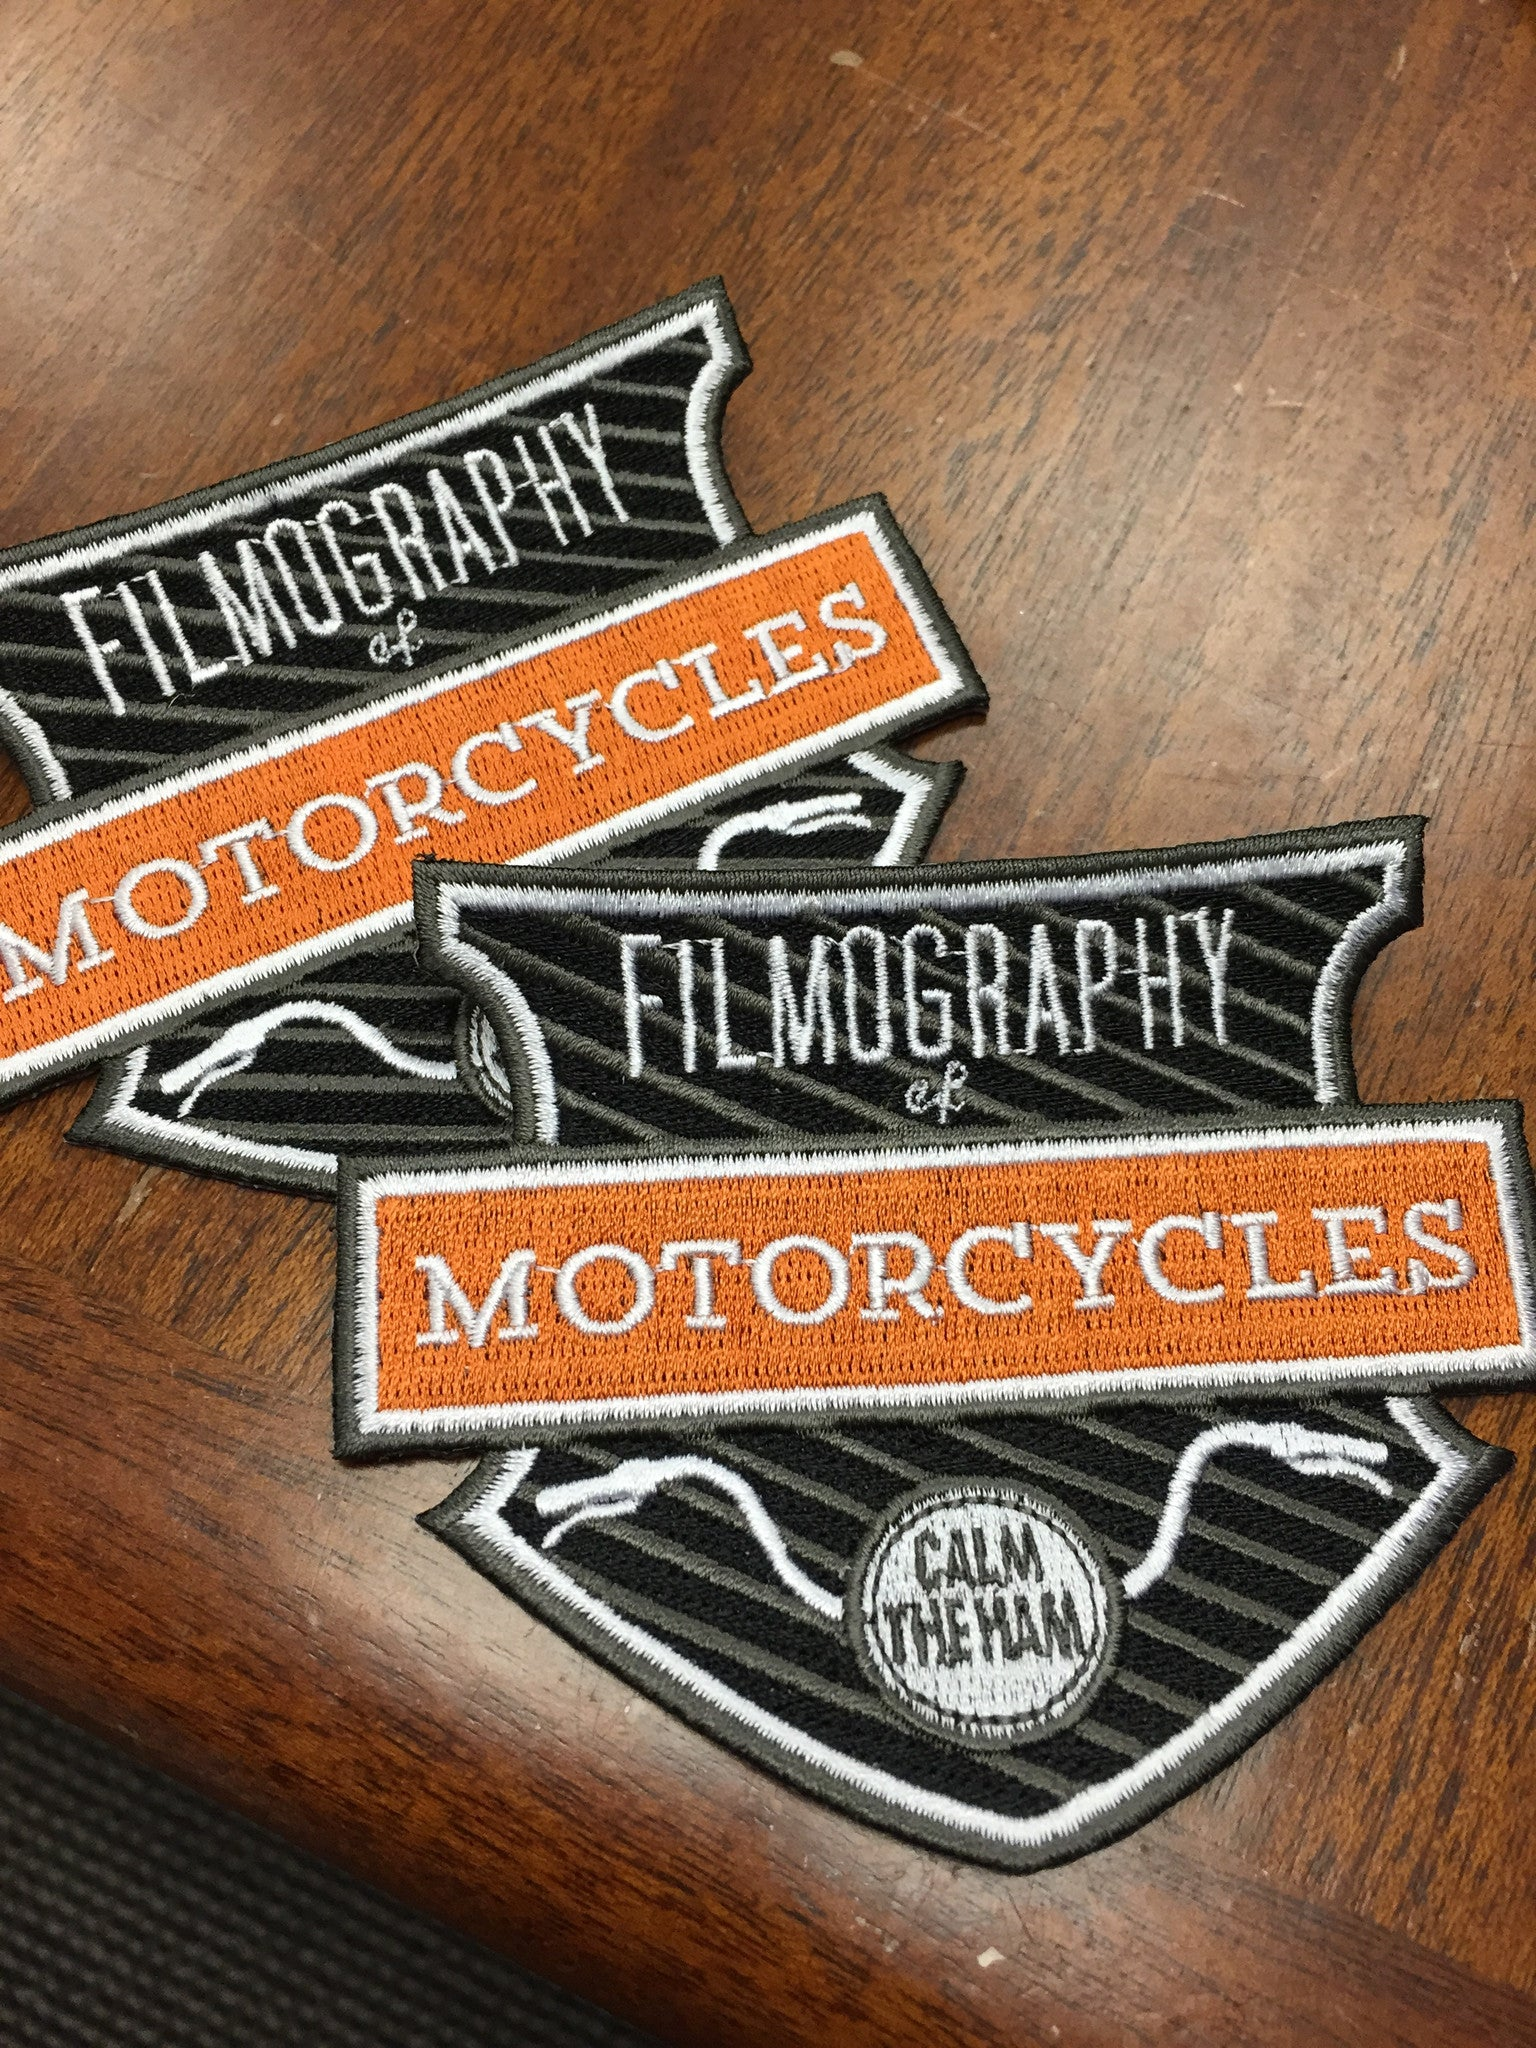 Collector's Patch - Filmography of Motorcycles